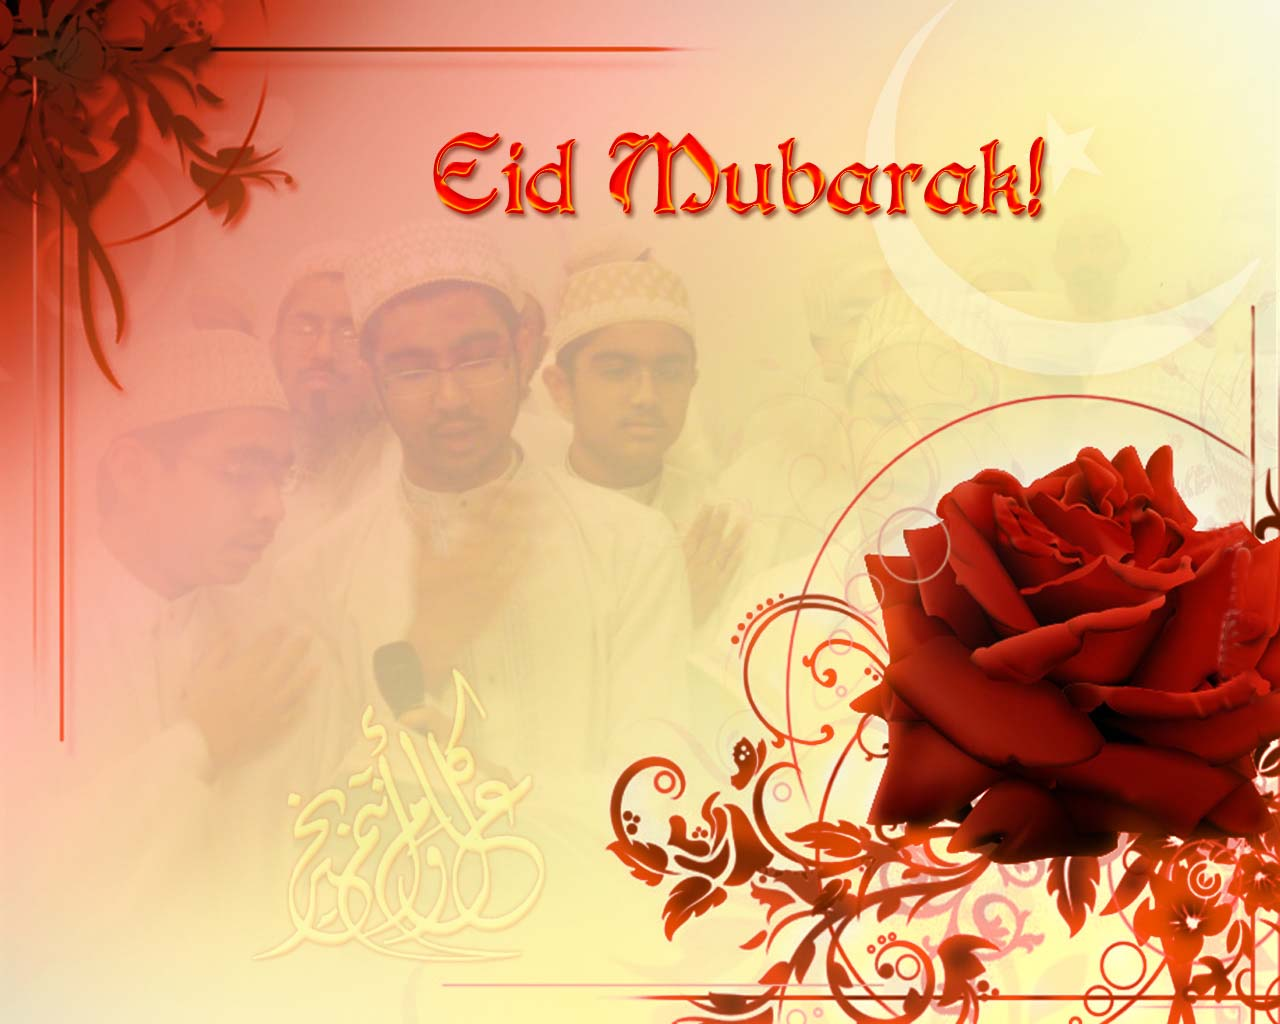 http://4.bp.blogspot.com/-h_ErXgG5yZA/UCZKZCDGKOI/AAAAAAAAAak/JoNRhH-wpbI/s1600/beautiful-eid-ul-adha-for-wallpapers-12.jpg